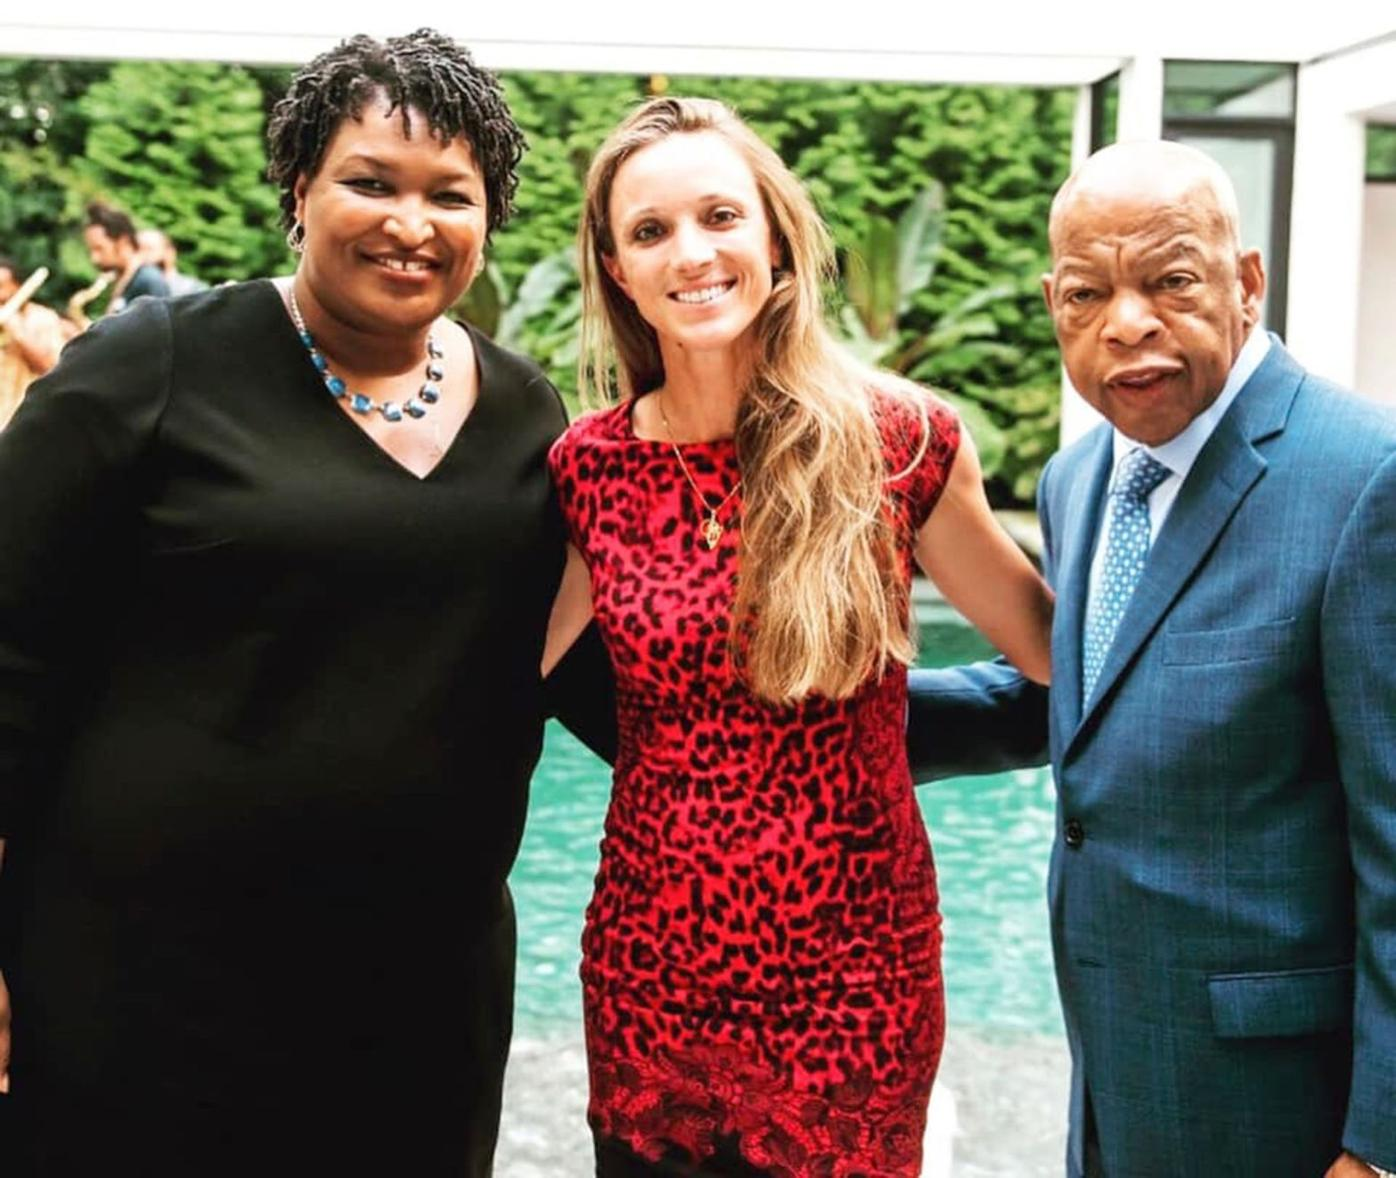 051519_MNS_tennis_contract_001 Amy Pazahanick Stacey Abrams John Lewis